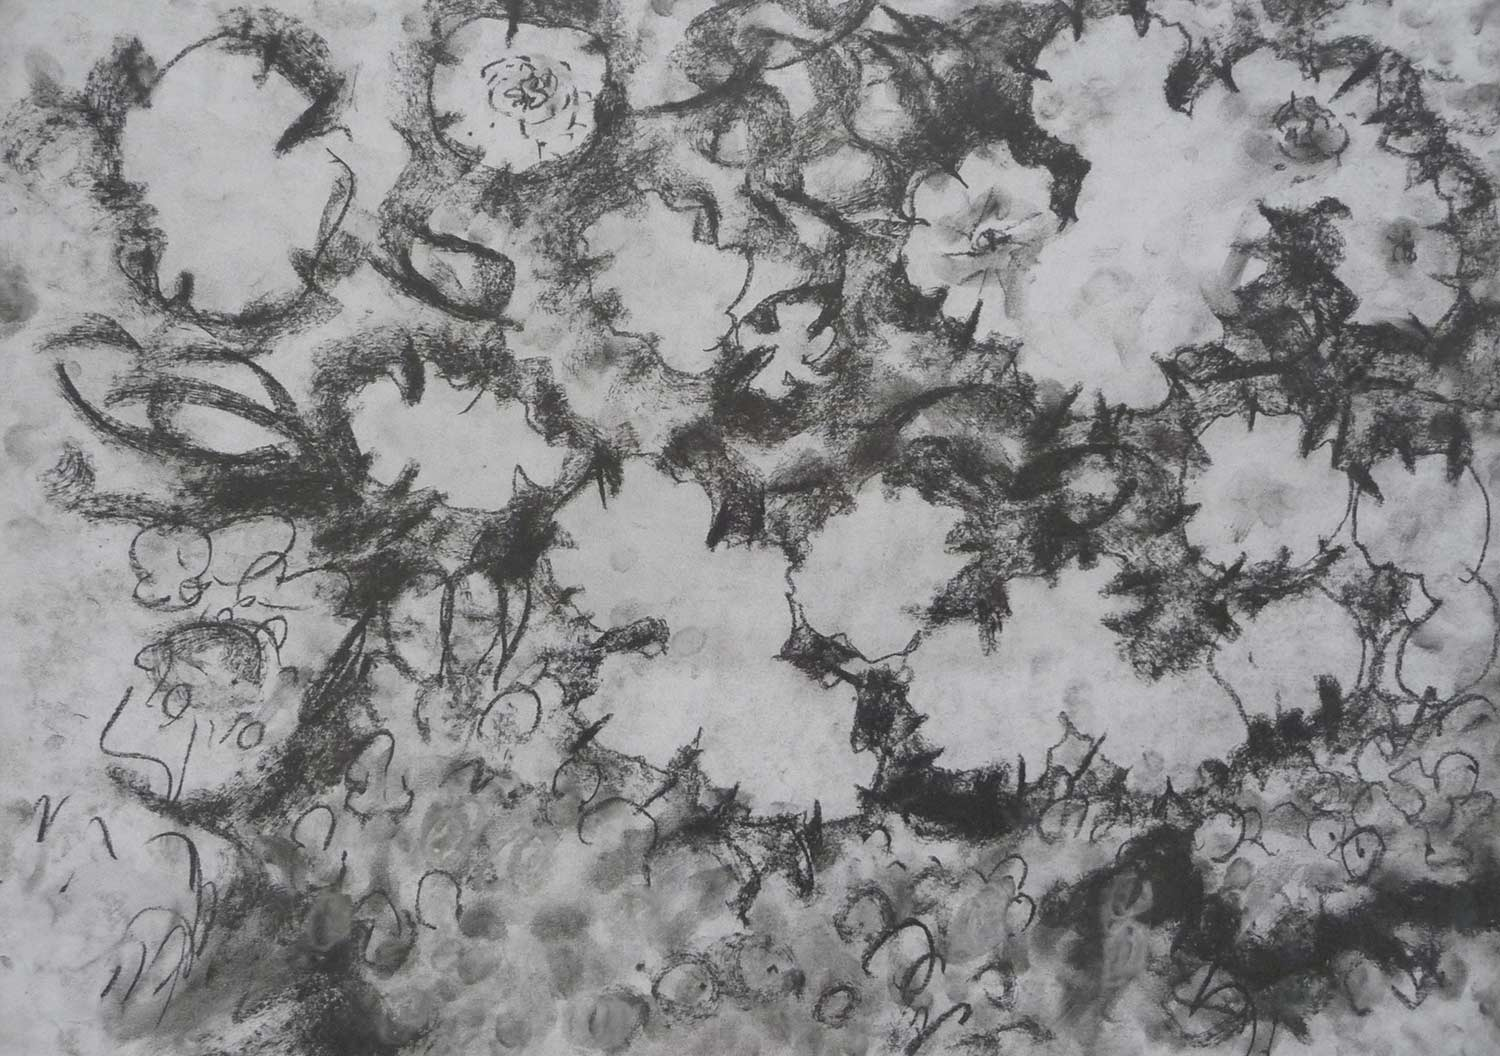 dark-drawing-flowers-black-and-white.jpg